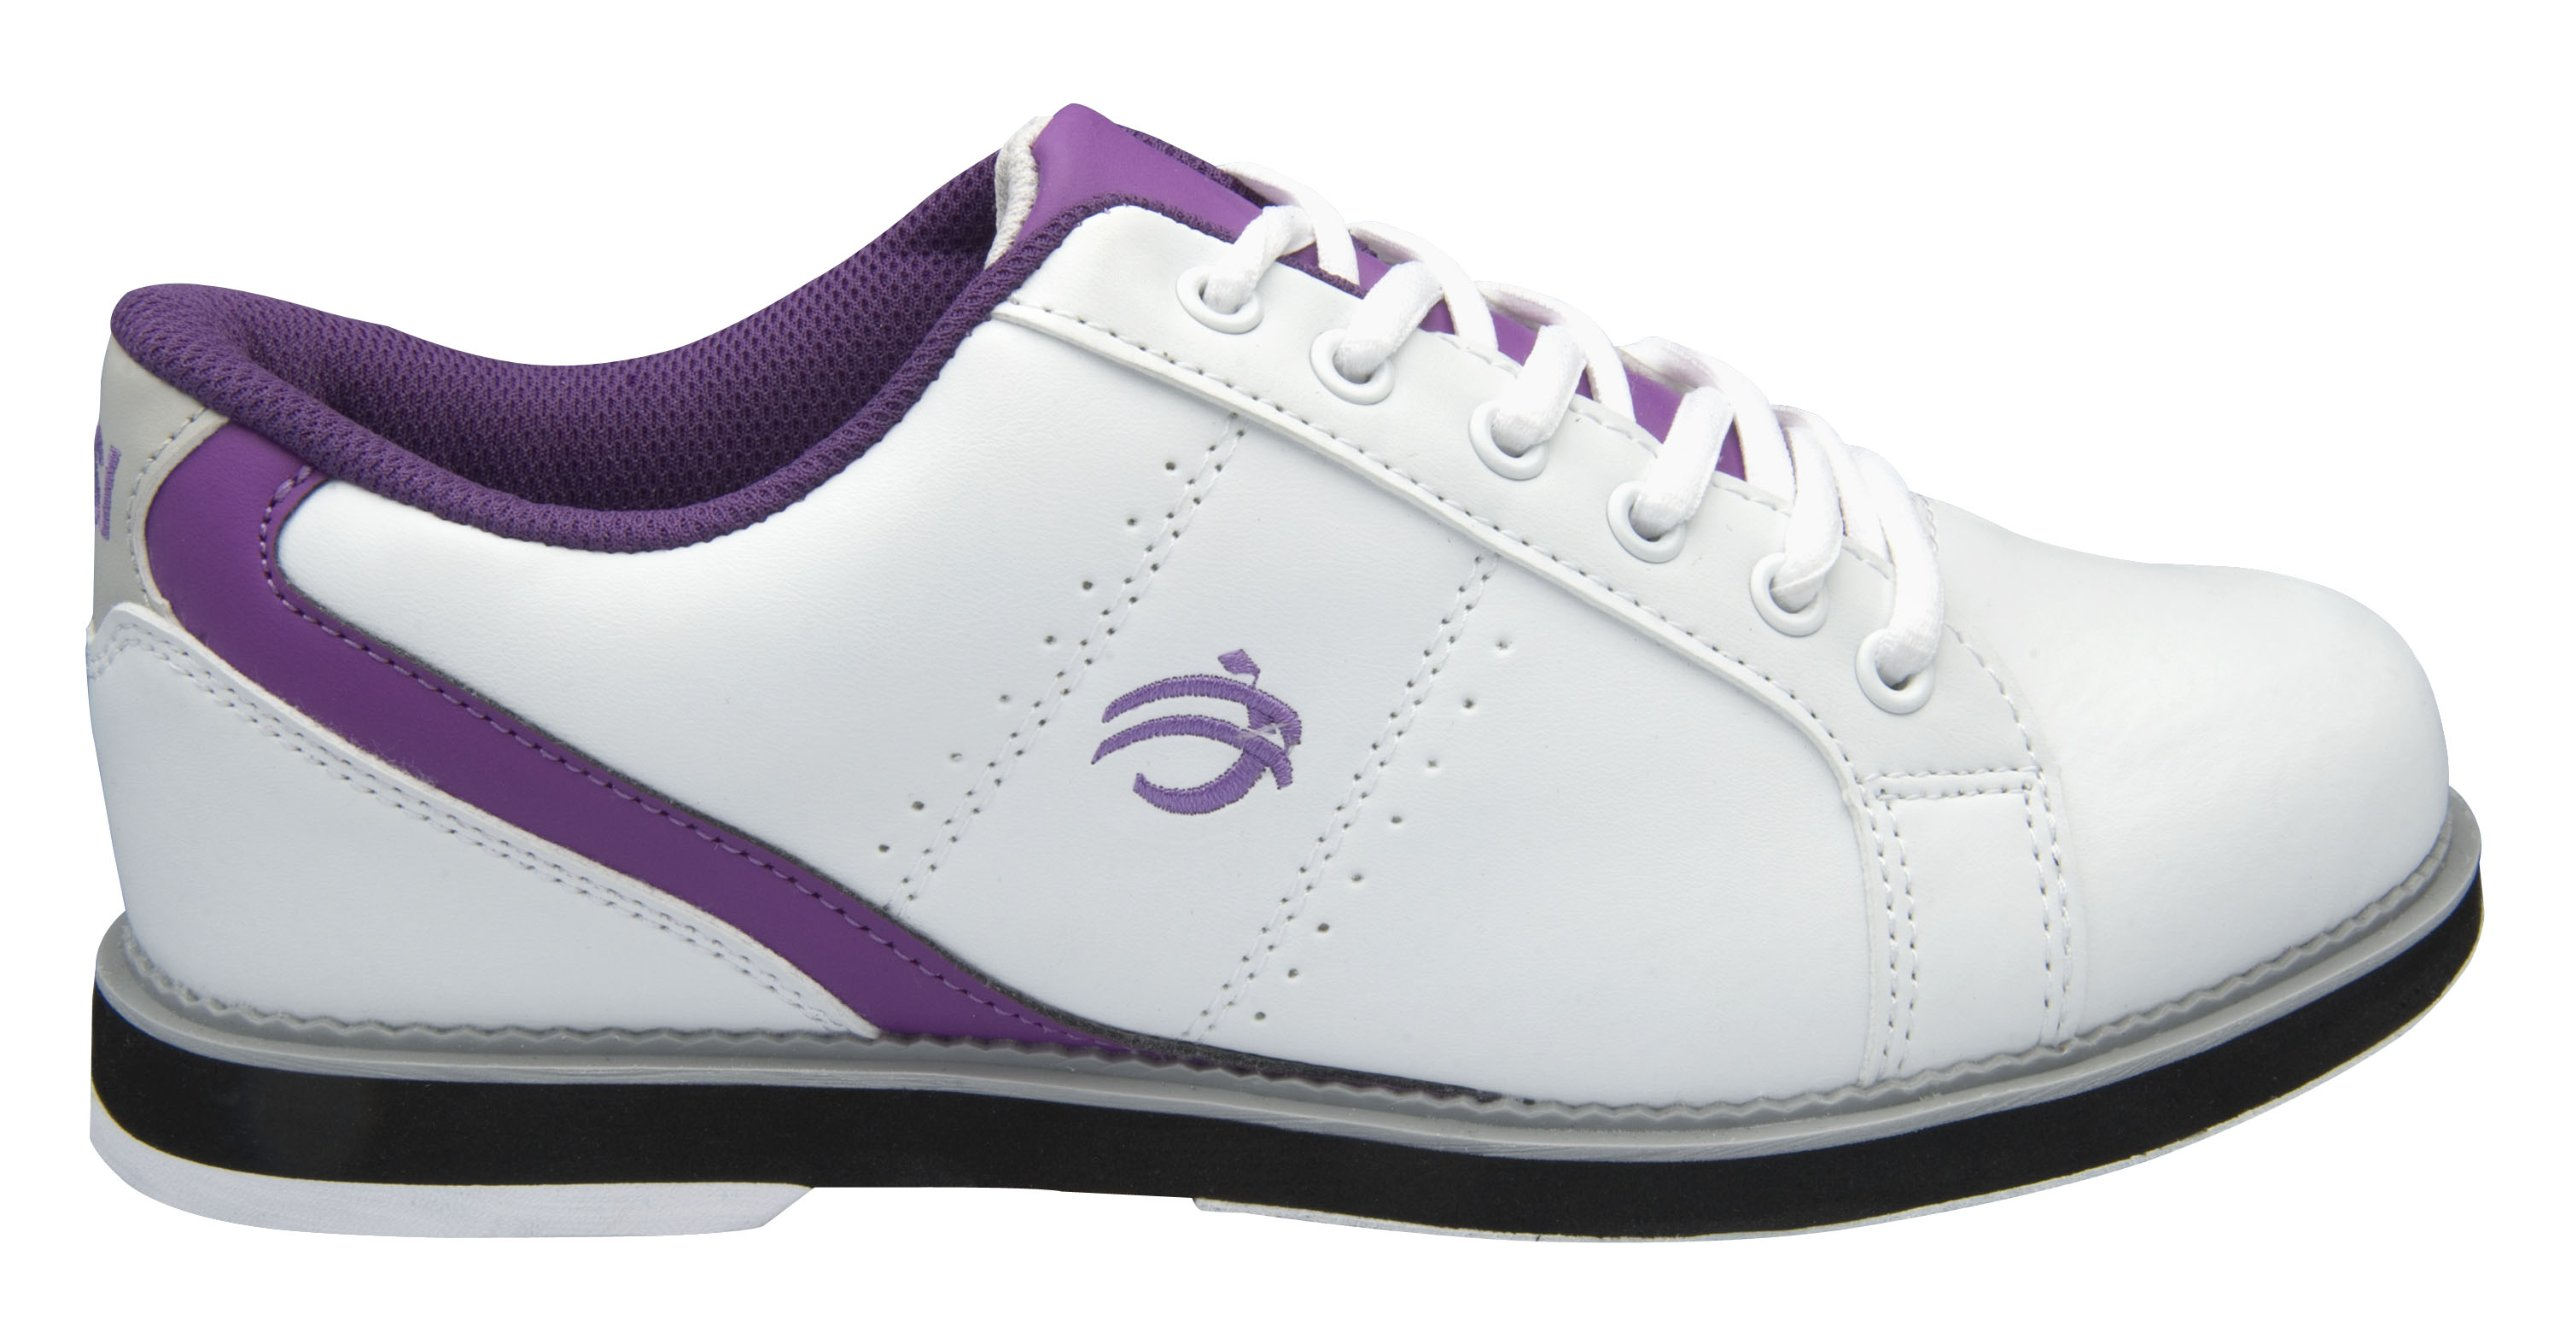 BSI Women's 460 Bowling Shoe, White/Purple, Size 9